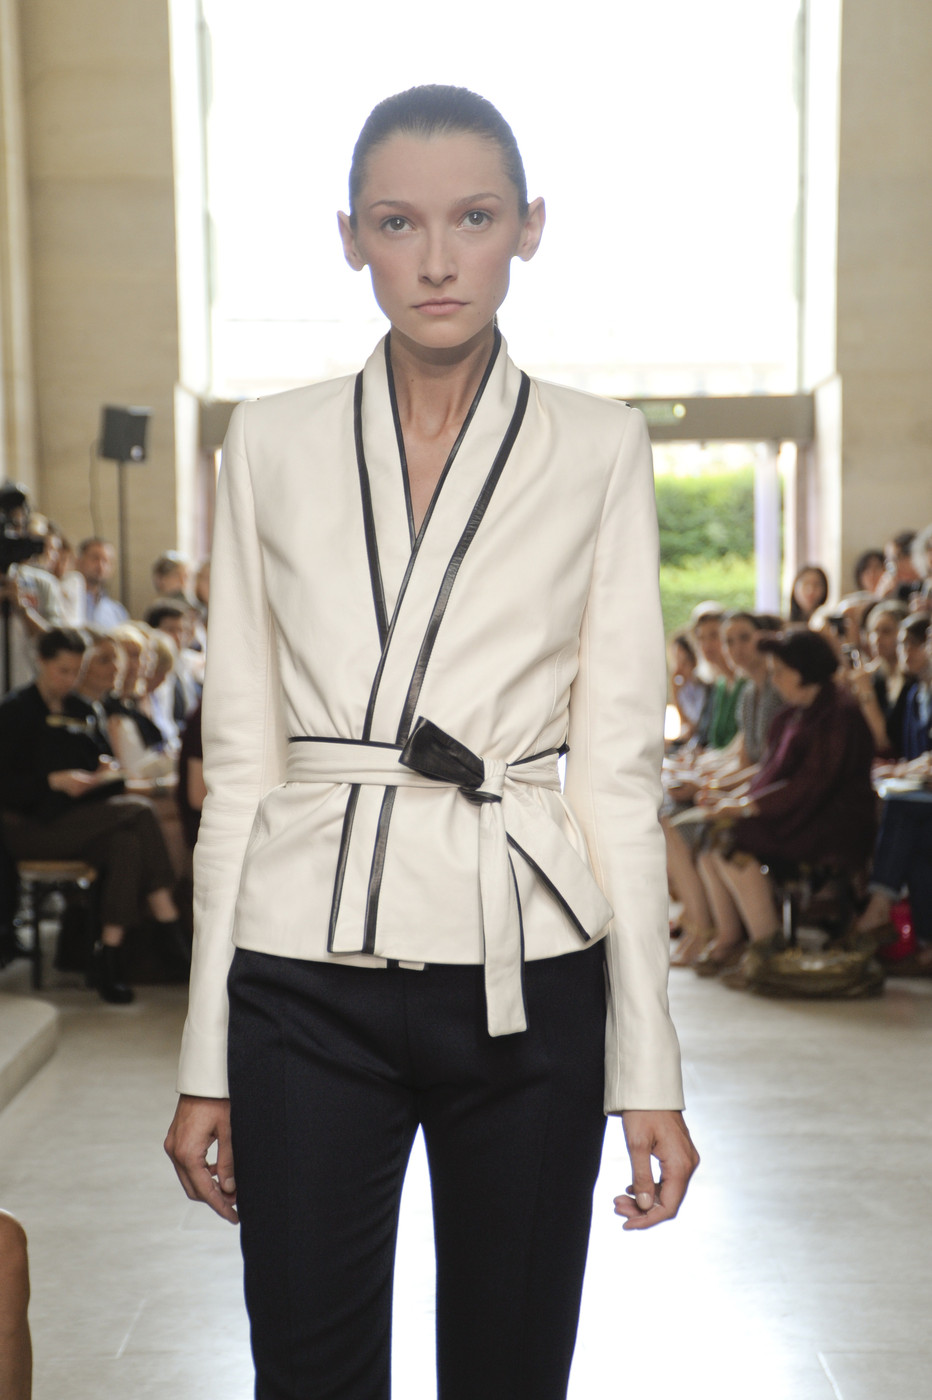 Bouchra Jarrar Haute Couture Fall/Winter 2010 / Lanvin new fashion designer via www.fashionedbylove.co.uk